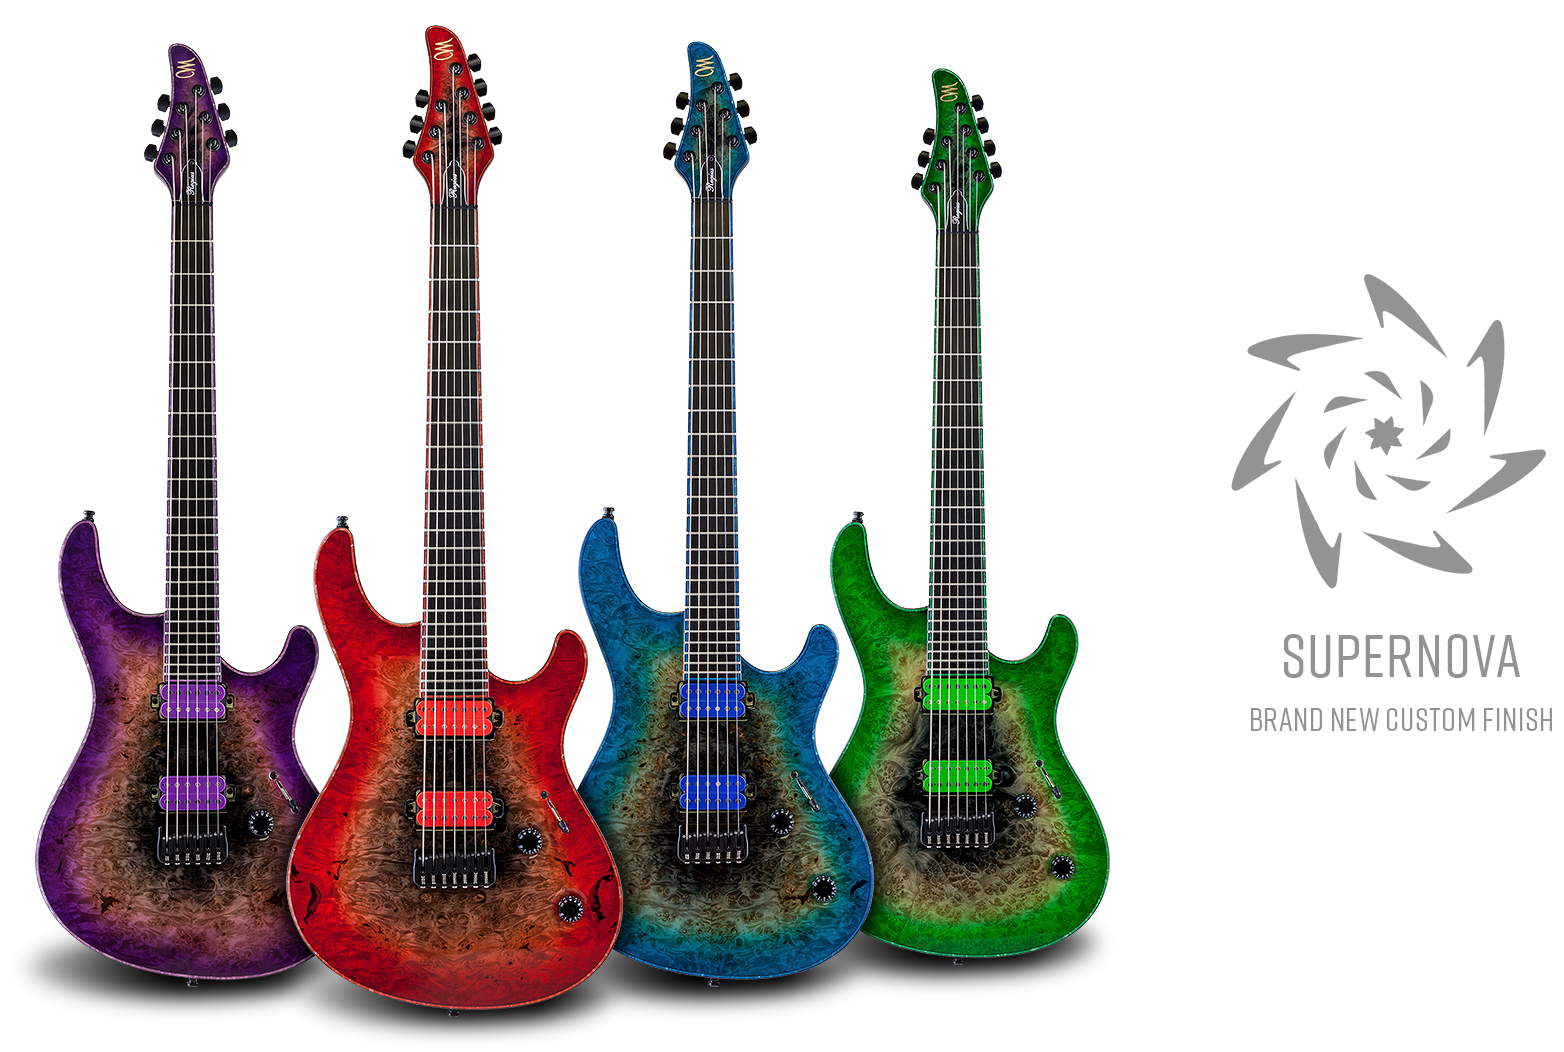 Supernova – Brand New Custom Finish